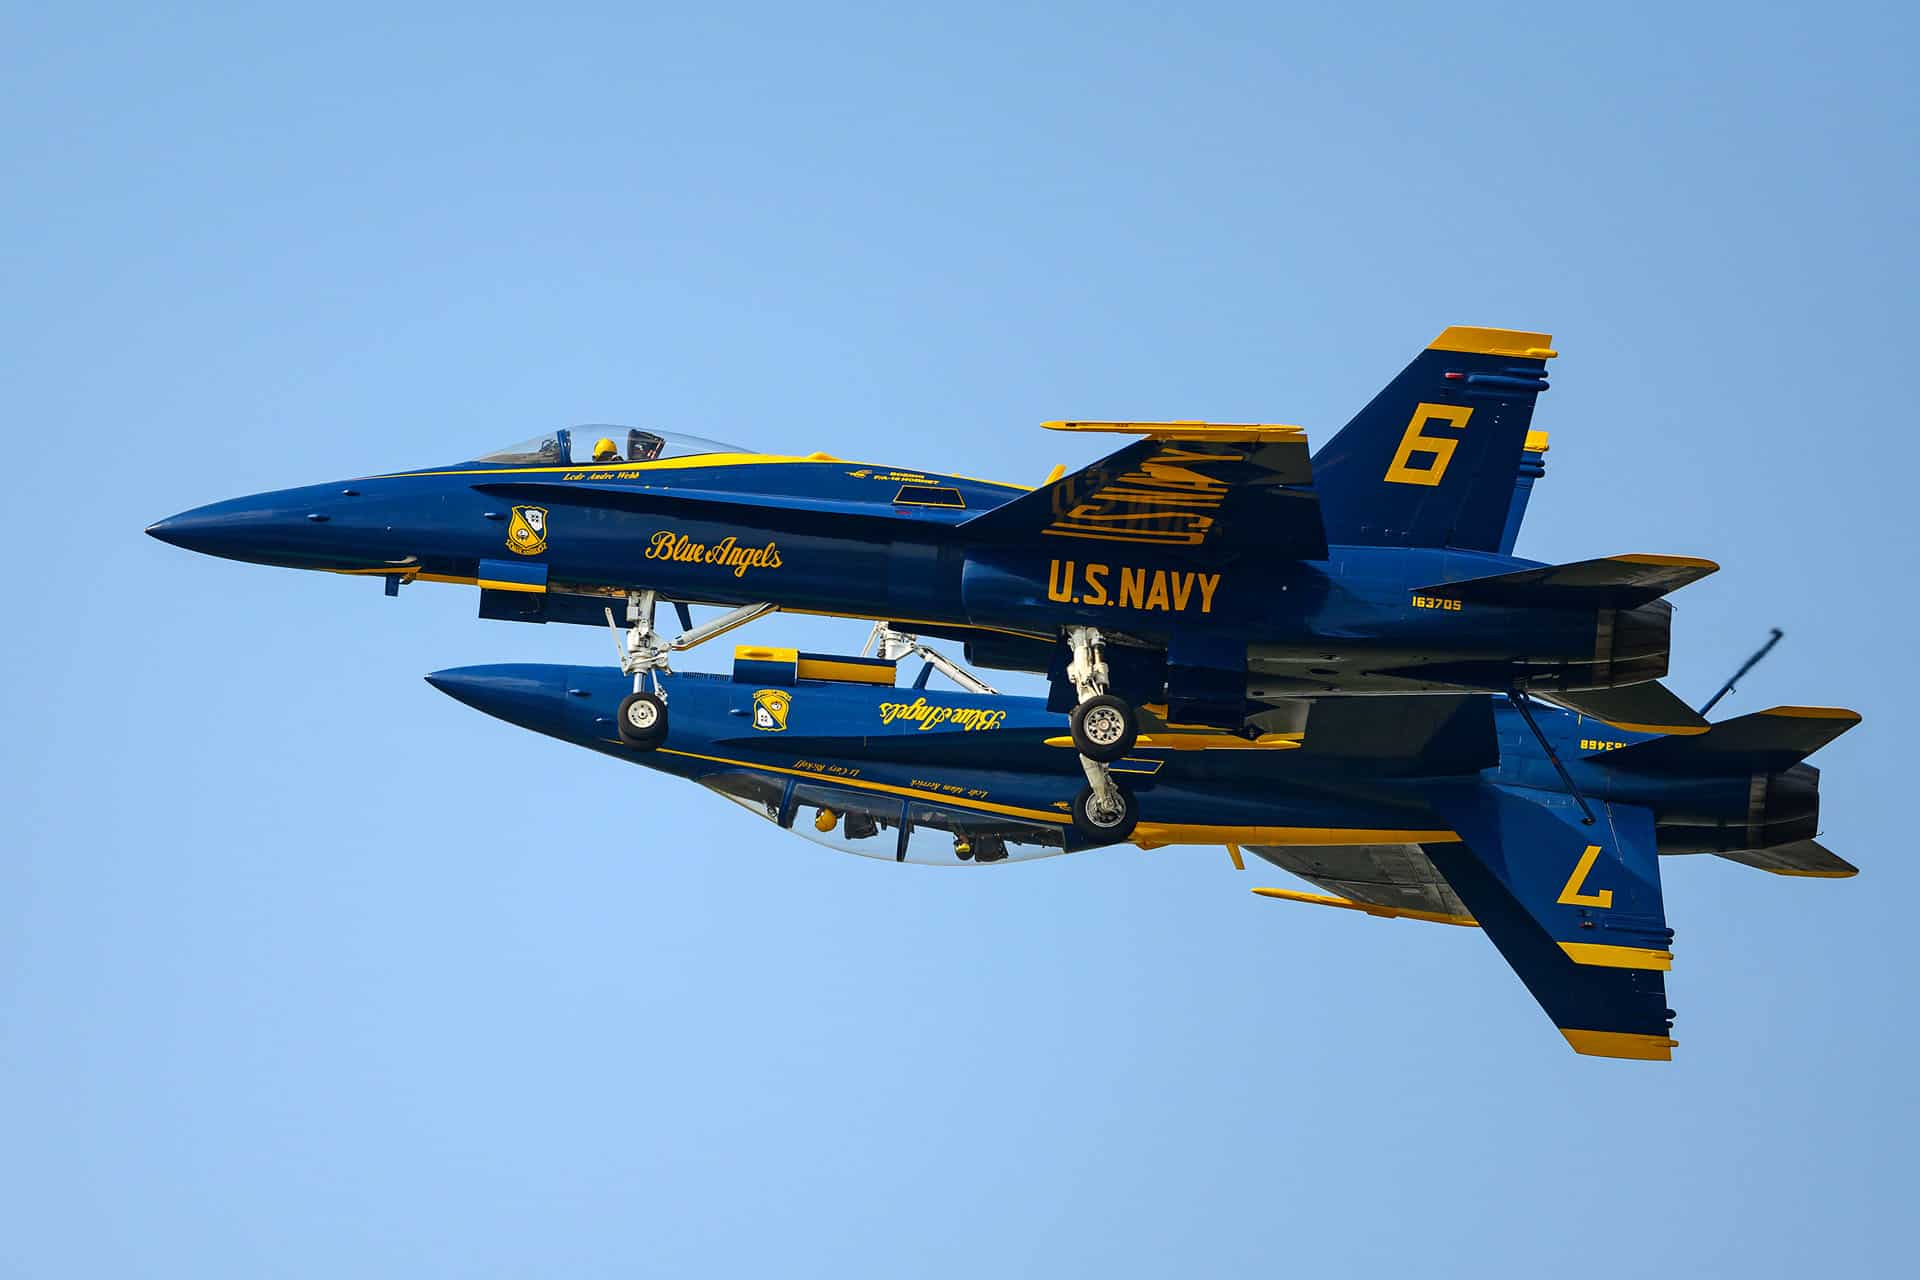 Blue Angels during airshow